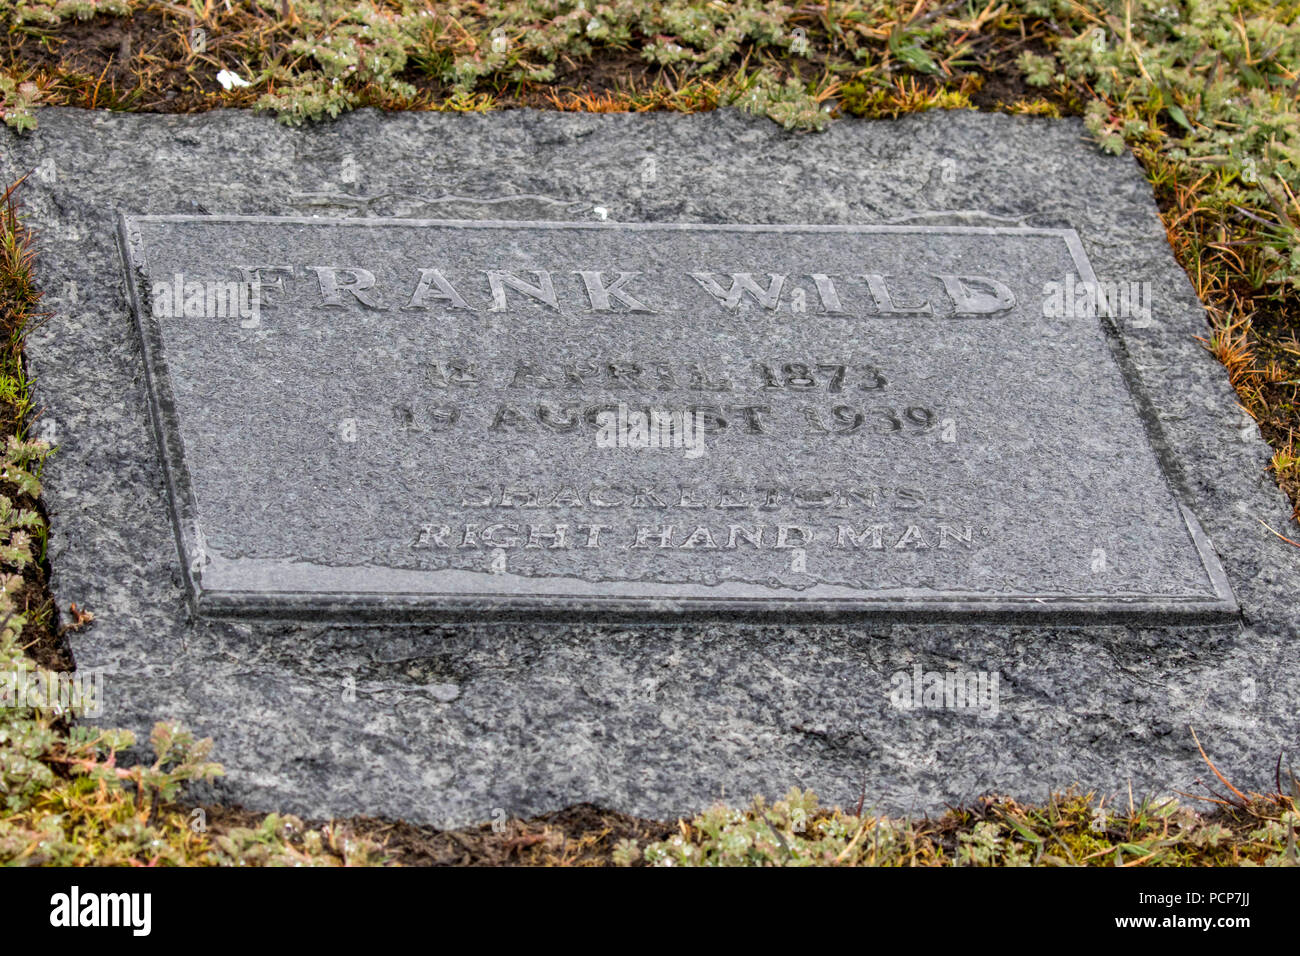 Grave marker on South Georgia for Frank Wild - Stock Image